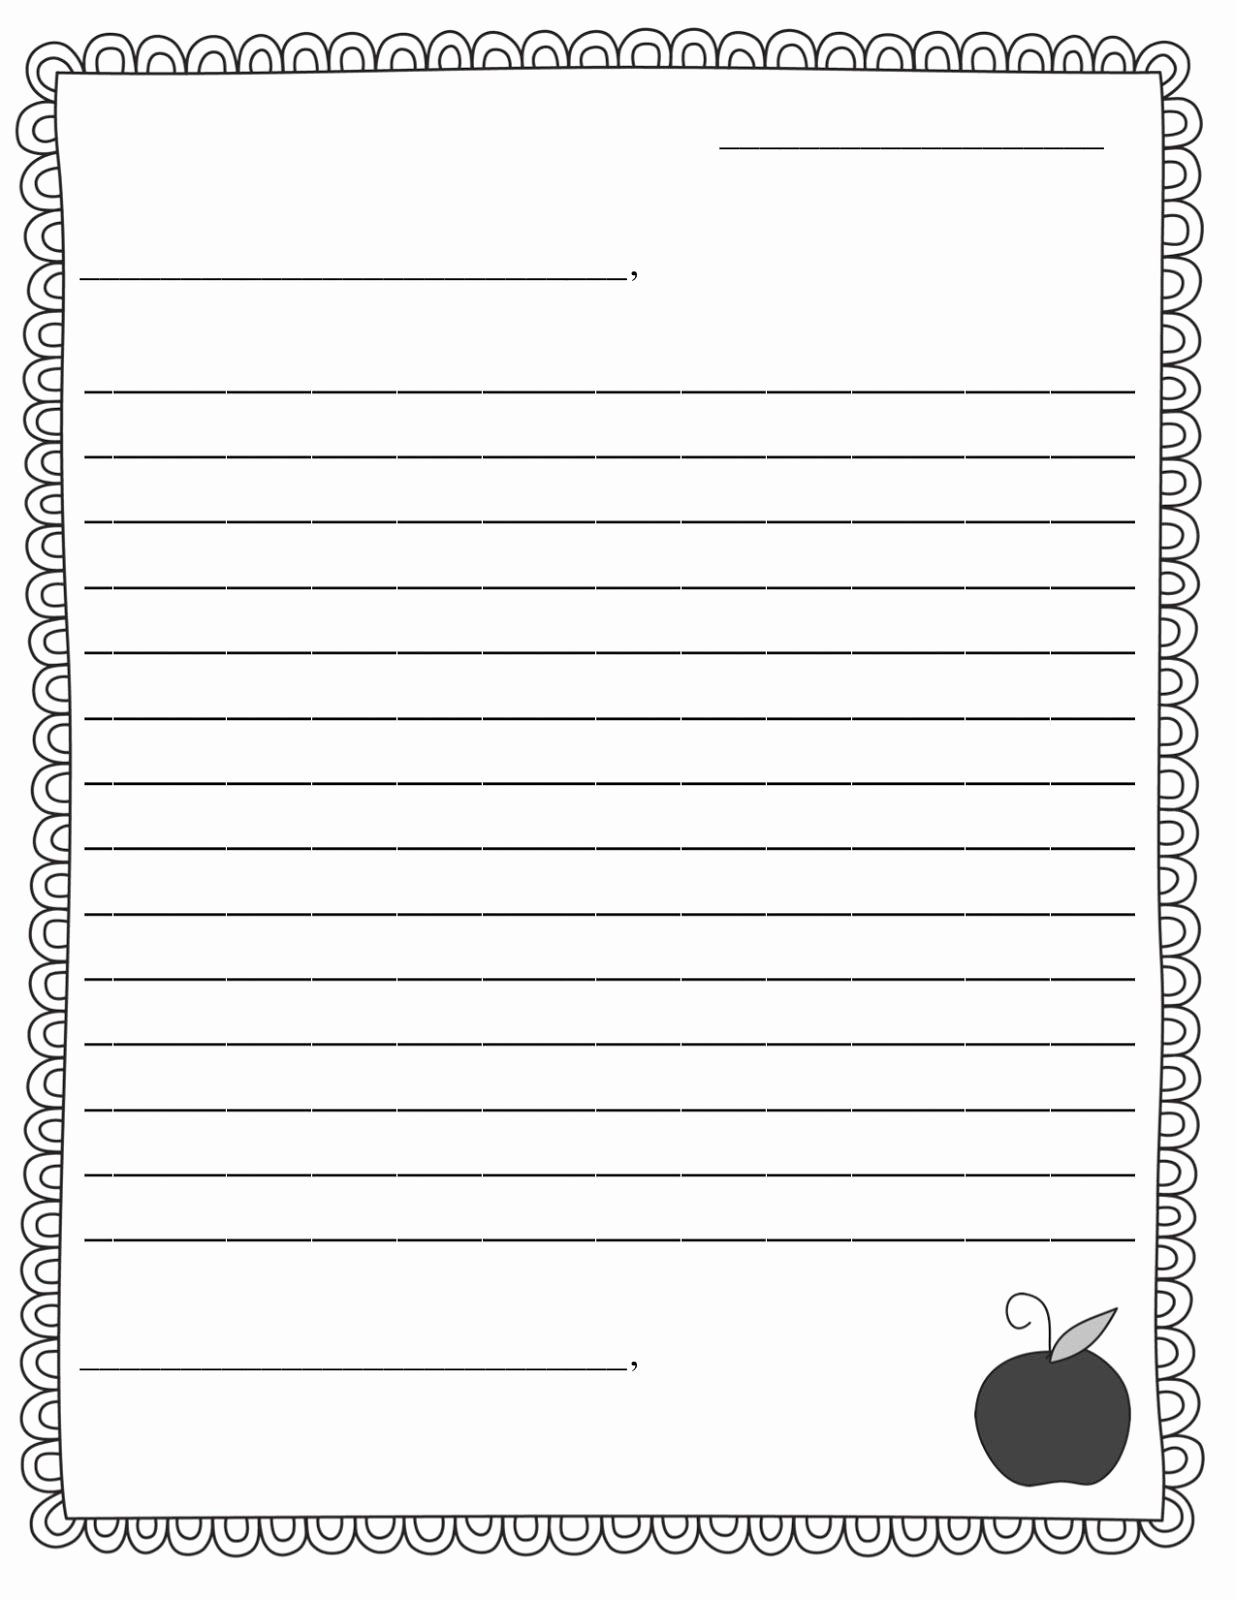 Letter Writing Templates for Kids Best Of Letter Template 3abspkjv Letters